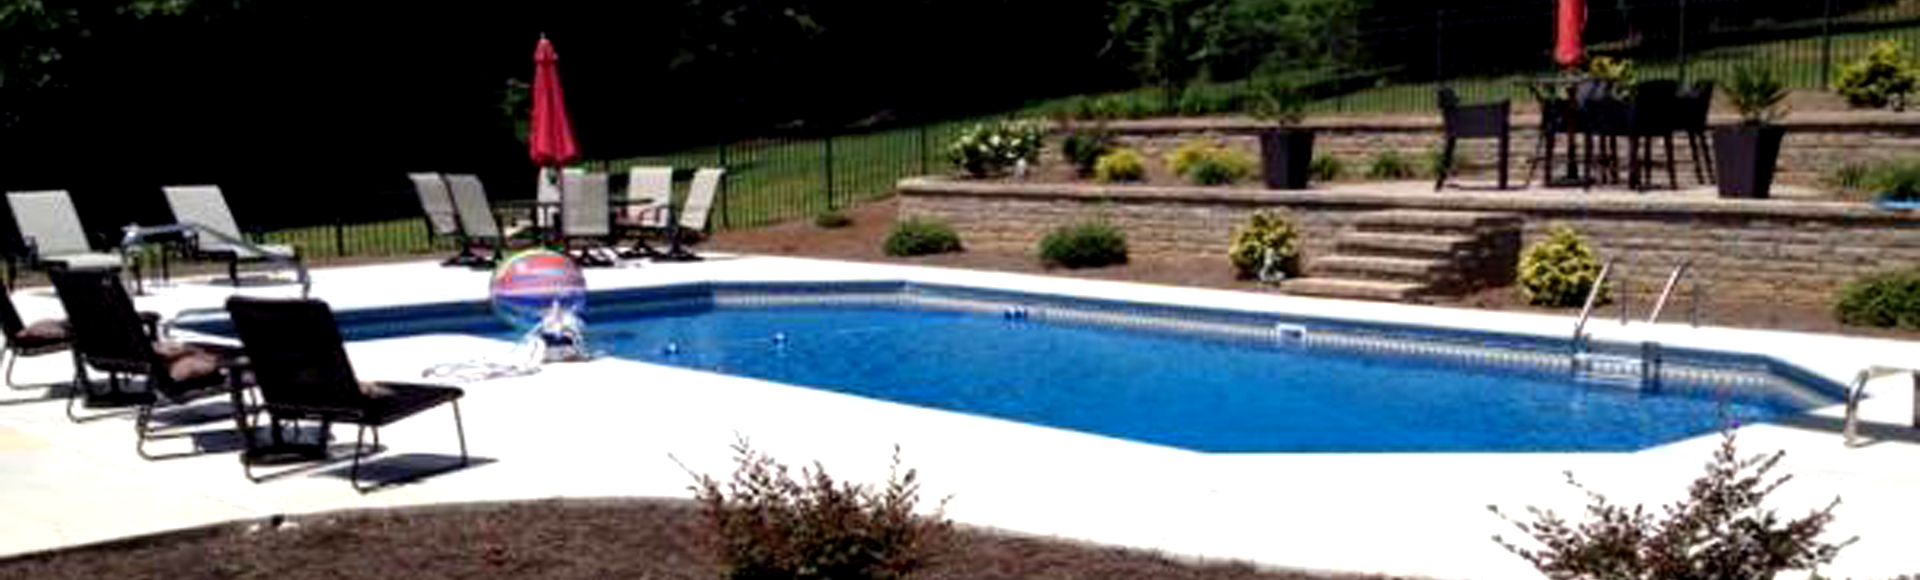 custom landscaping and pool design by Guilford Pools